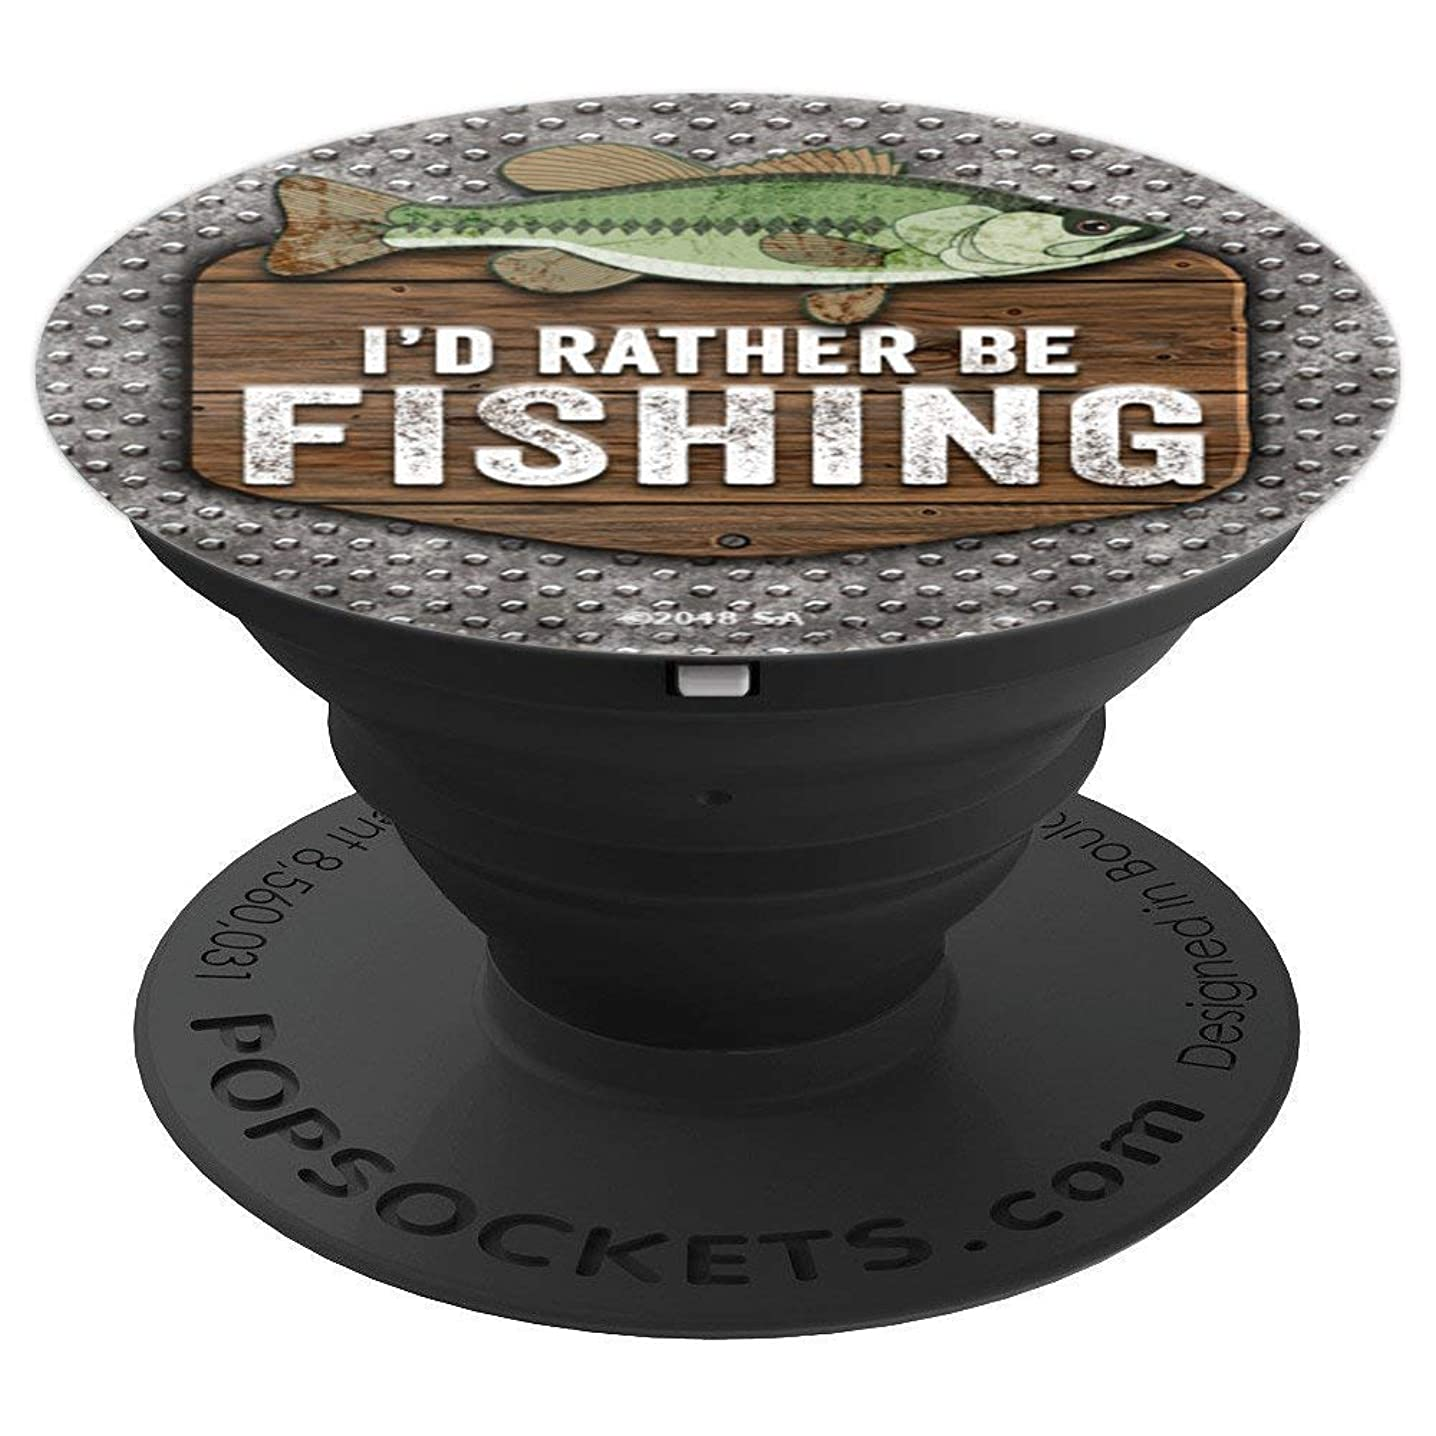 FUN FISHING BASS Guys Men Women Gift Rather Be Fishing - PopSockets Grip and Stand for Phones and Tablets